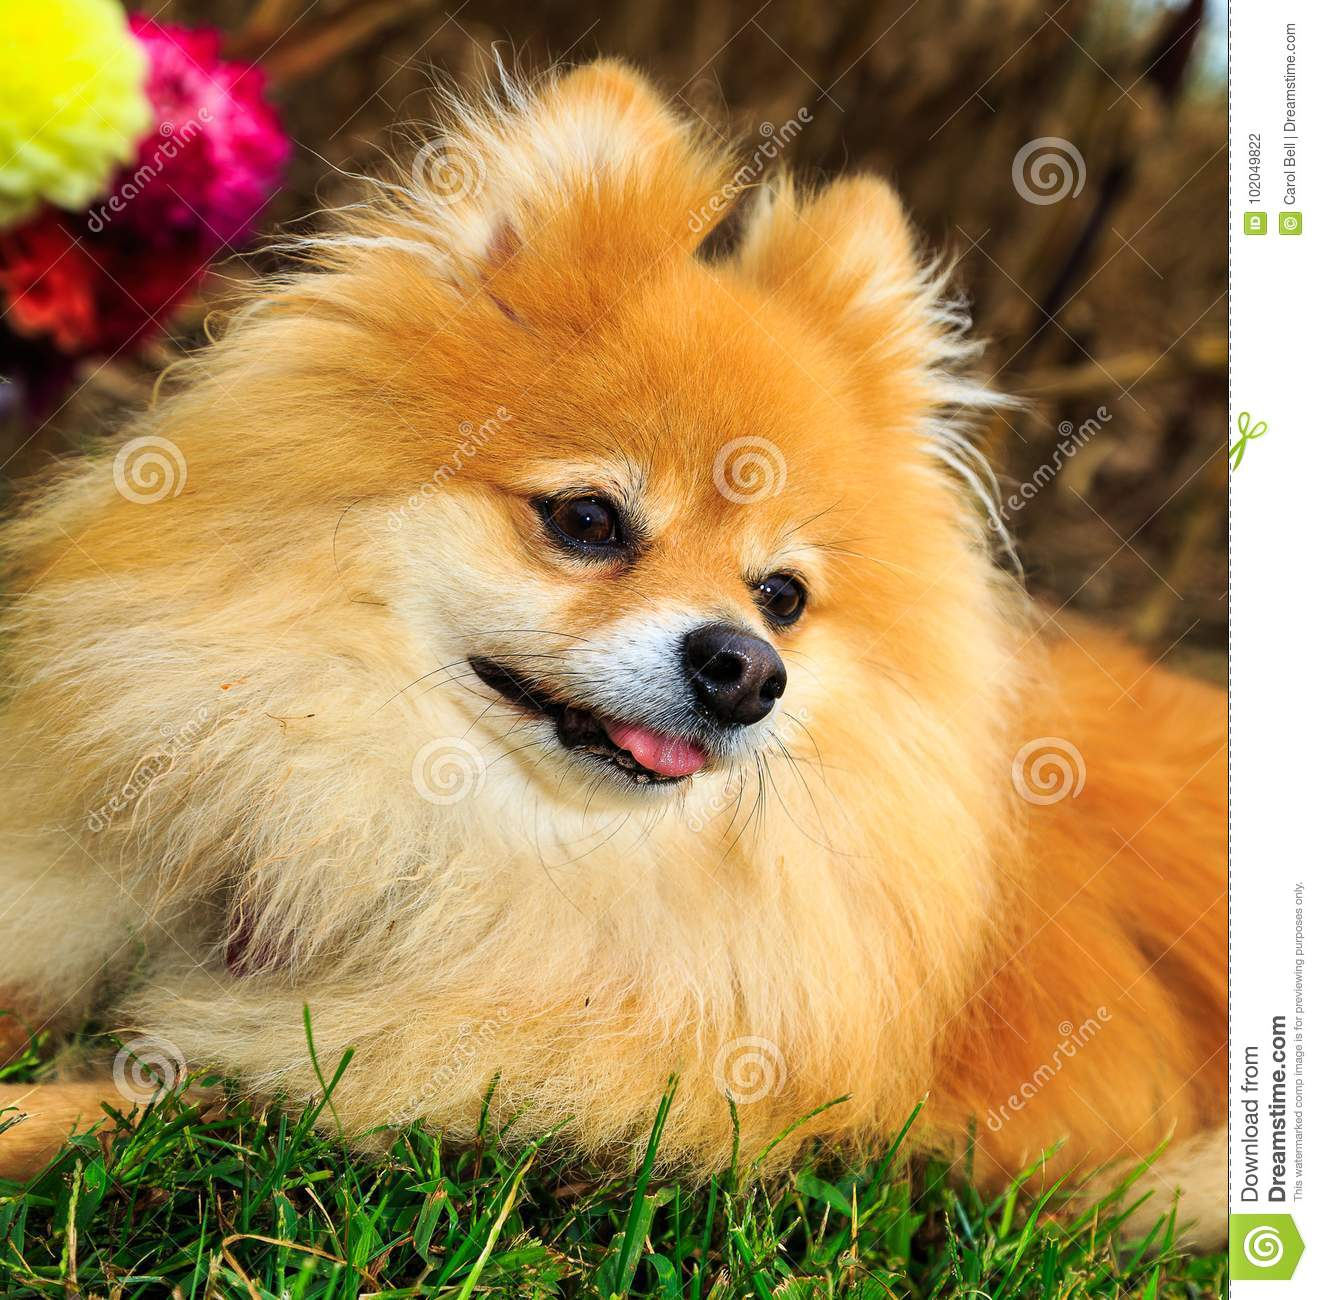 Pomeranian Dog Sitting In Corn Field With Flowers In Back Ground